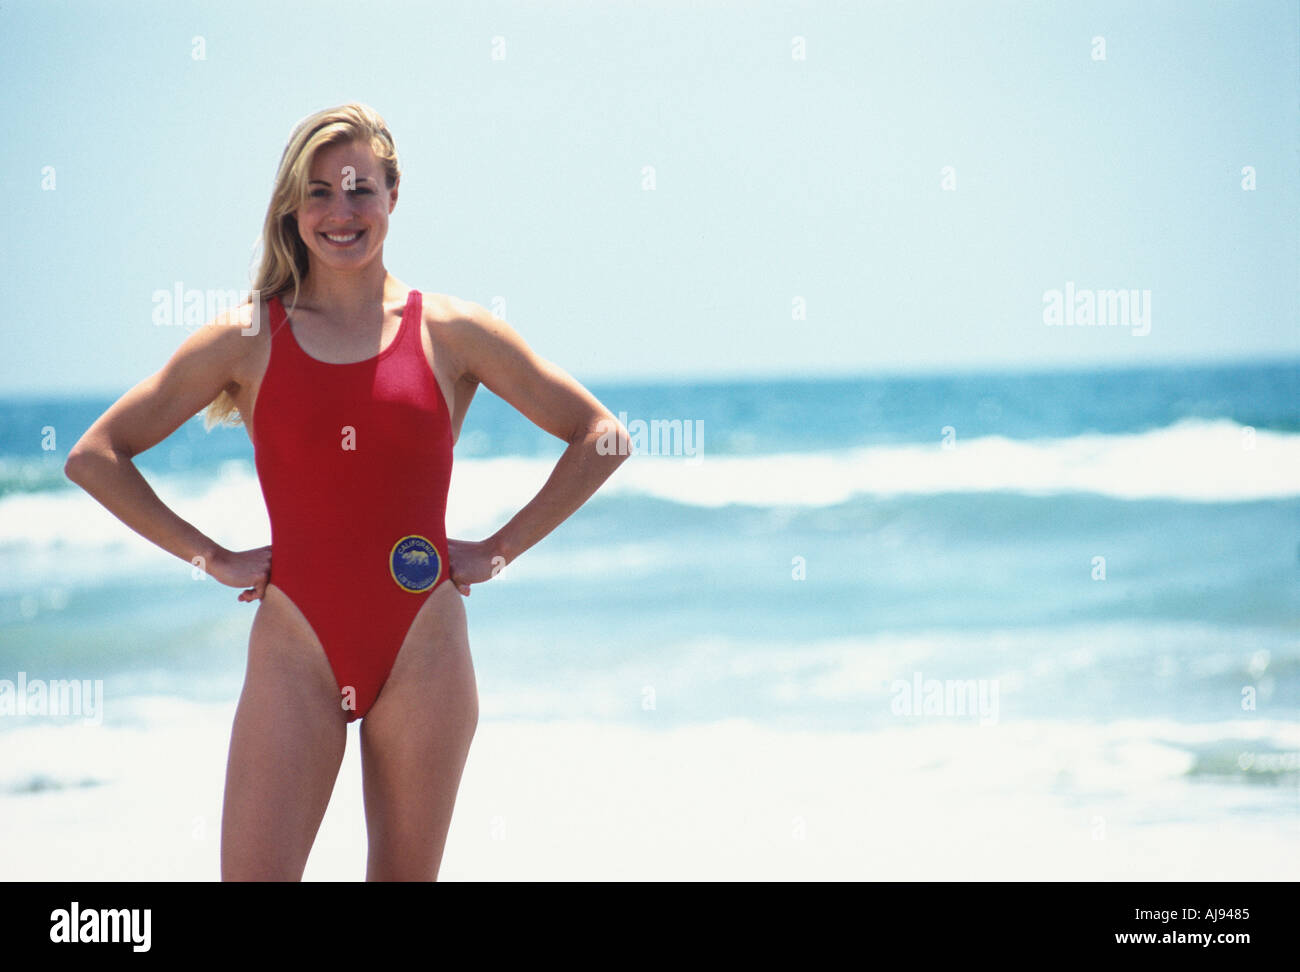 1 furthermore Stock Photo A Portrait Of A Female Lifeguard At The Beach 1217668 moreover 152384612235 besides Charlesrose additionally Location Of Guam. on house beautiful australia